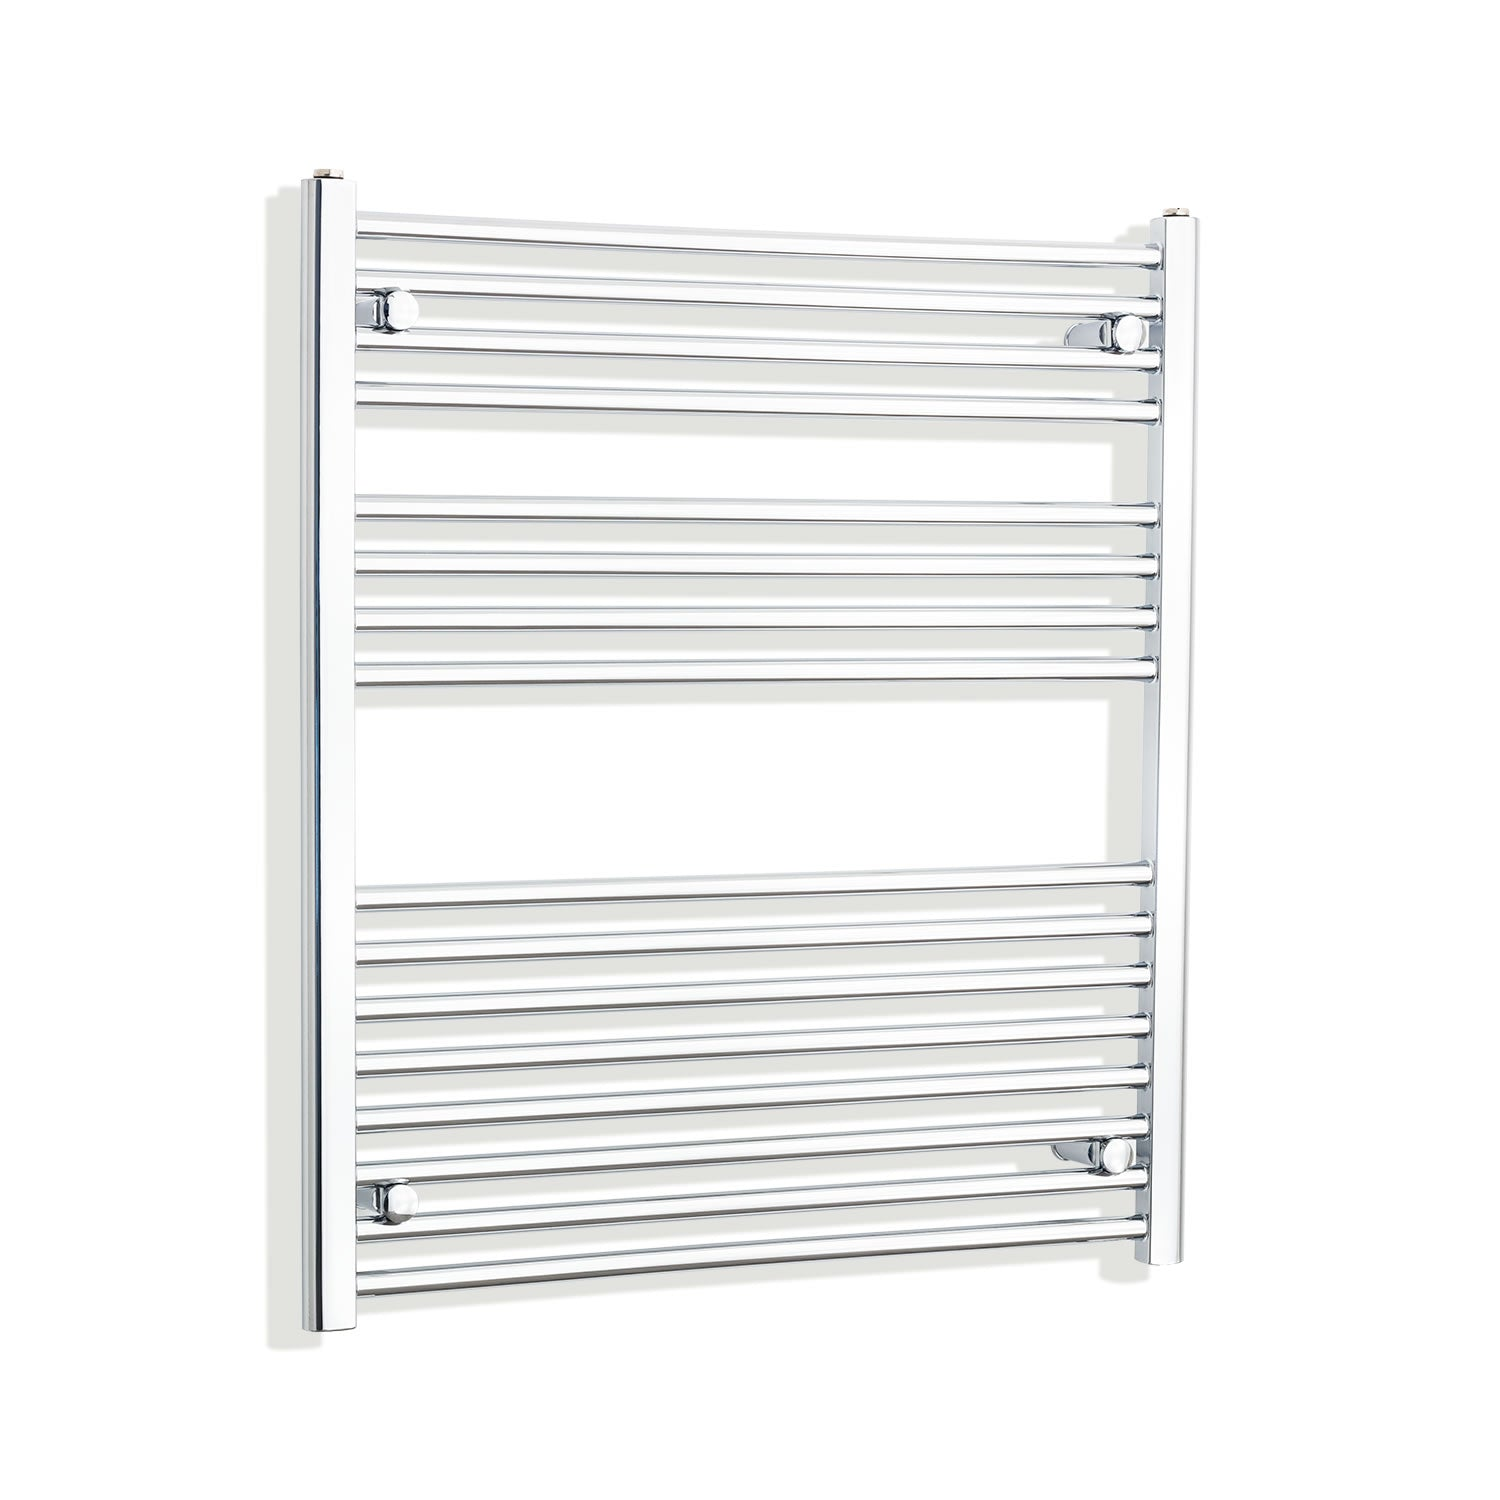 900mm Wide 900mm High Chrome Towel Rail Radiator